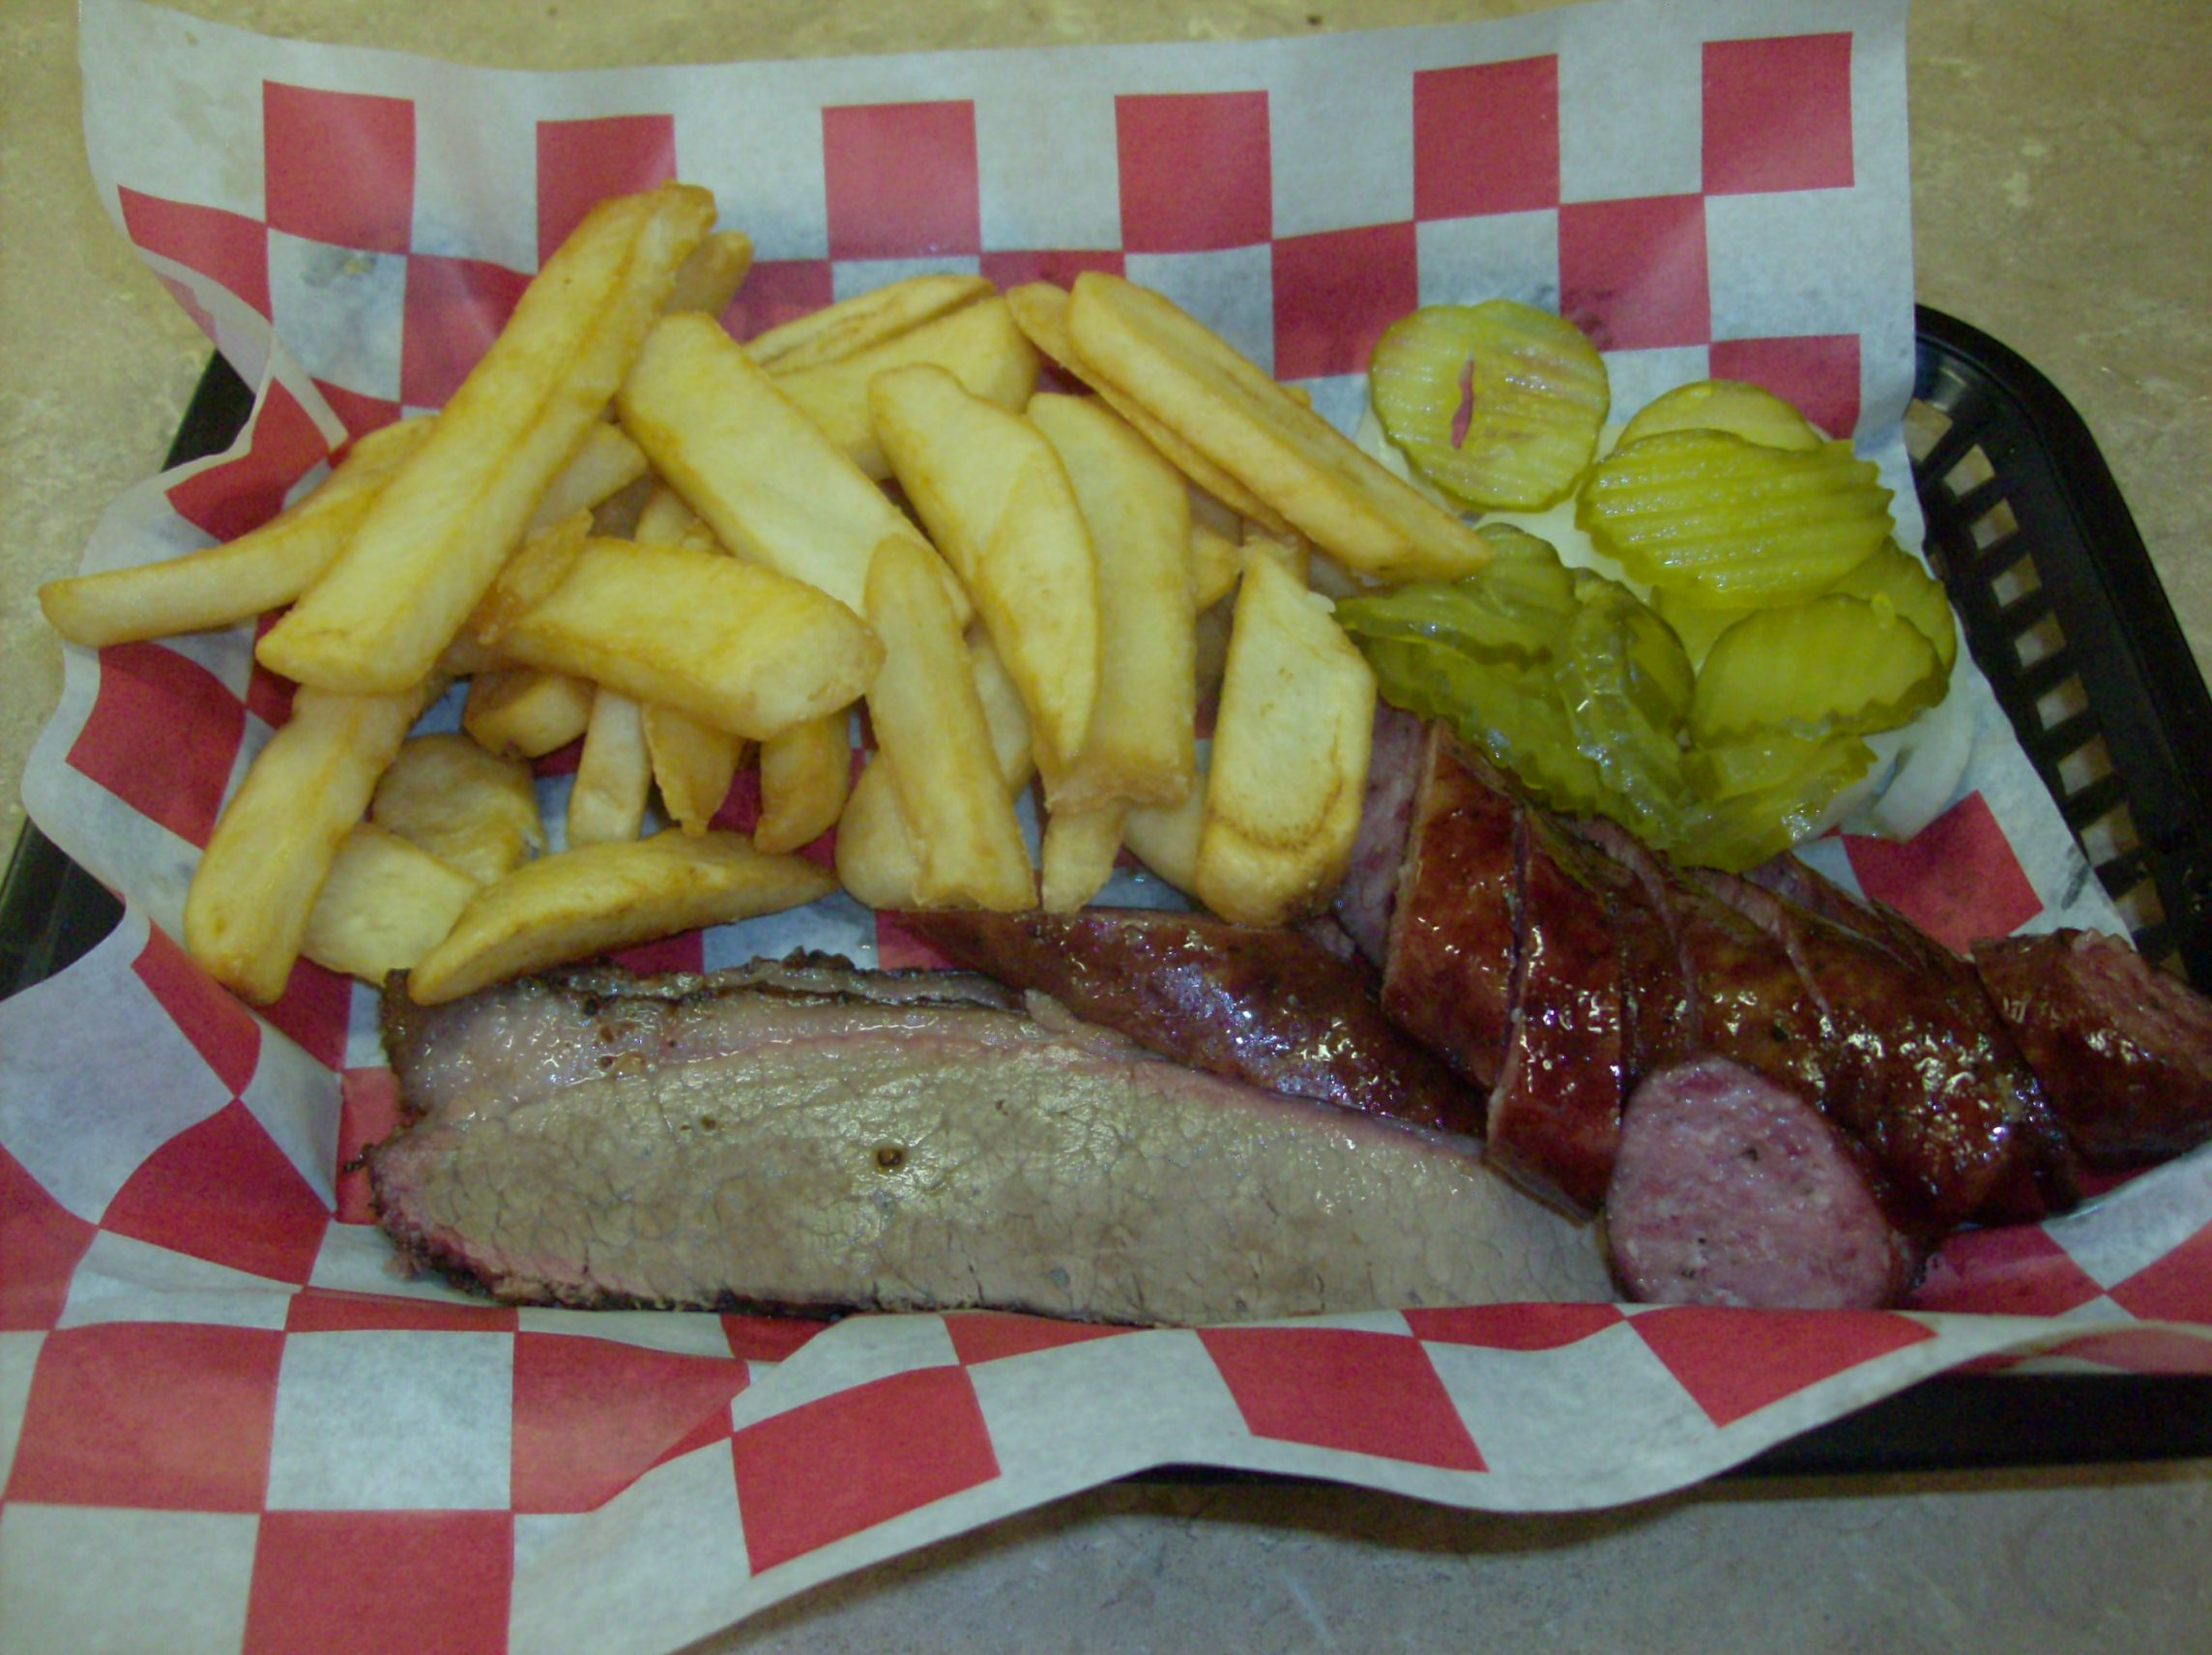 Bar-B-Que Plate (two meat: Brisket and Sausage) with Fries